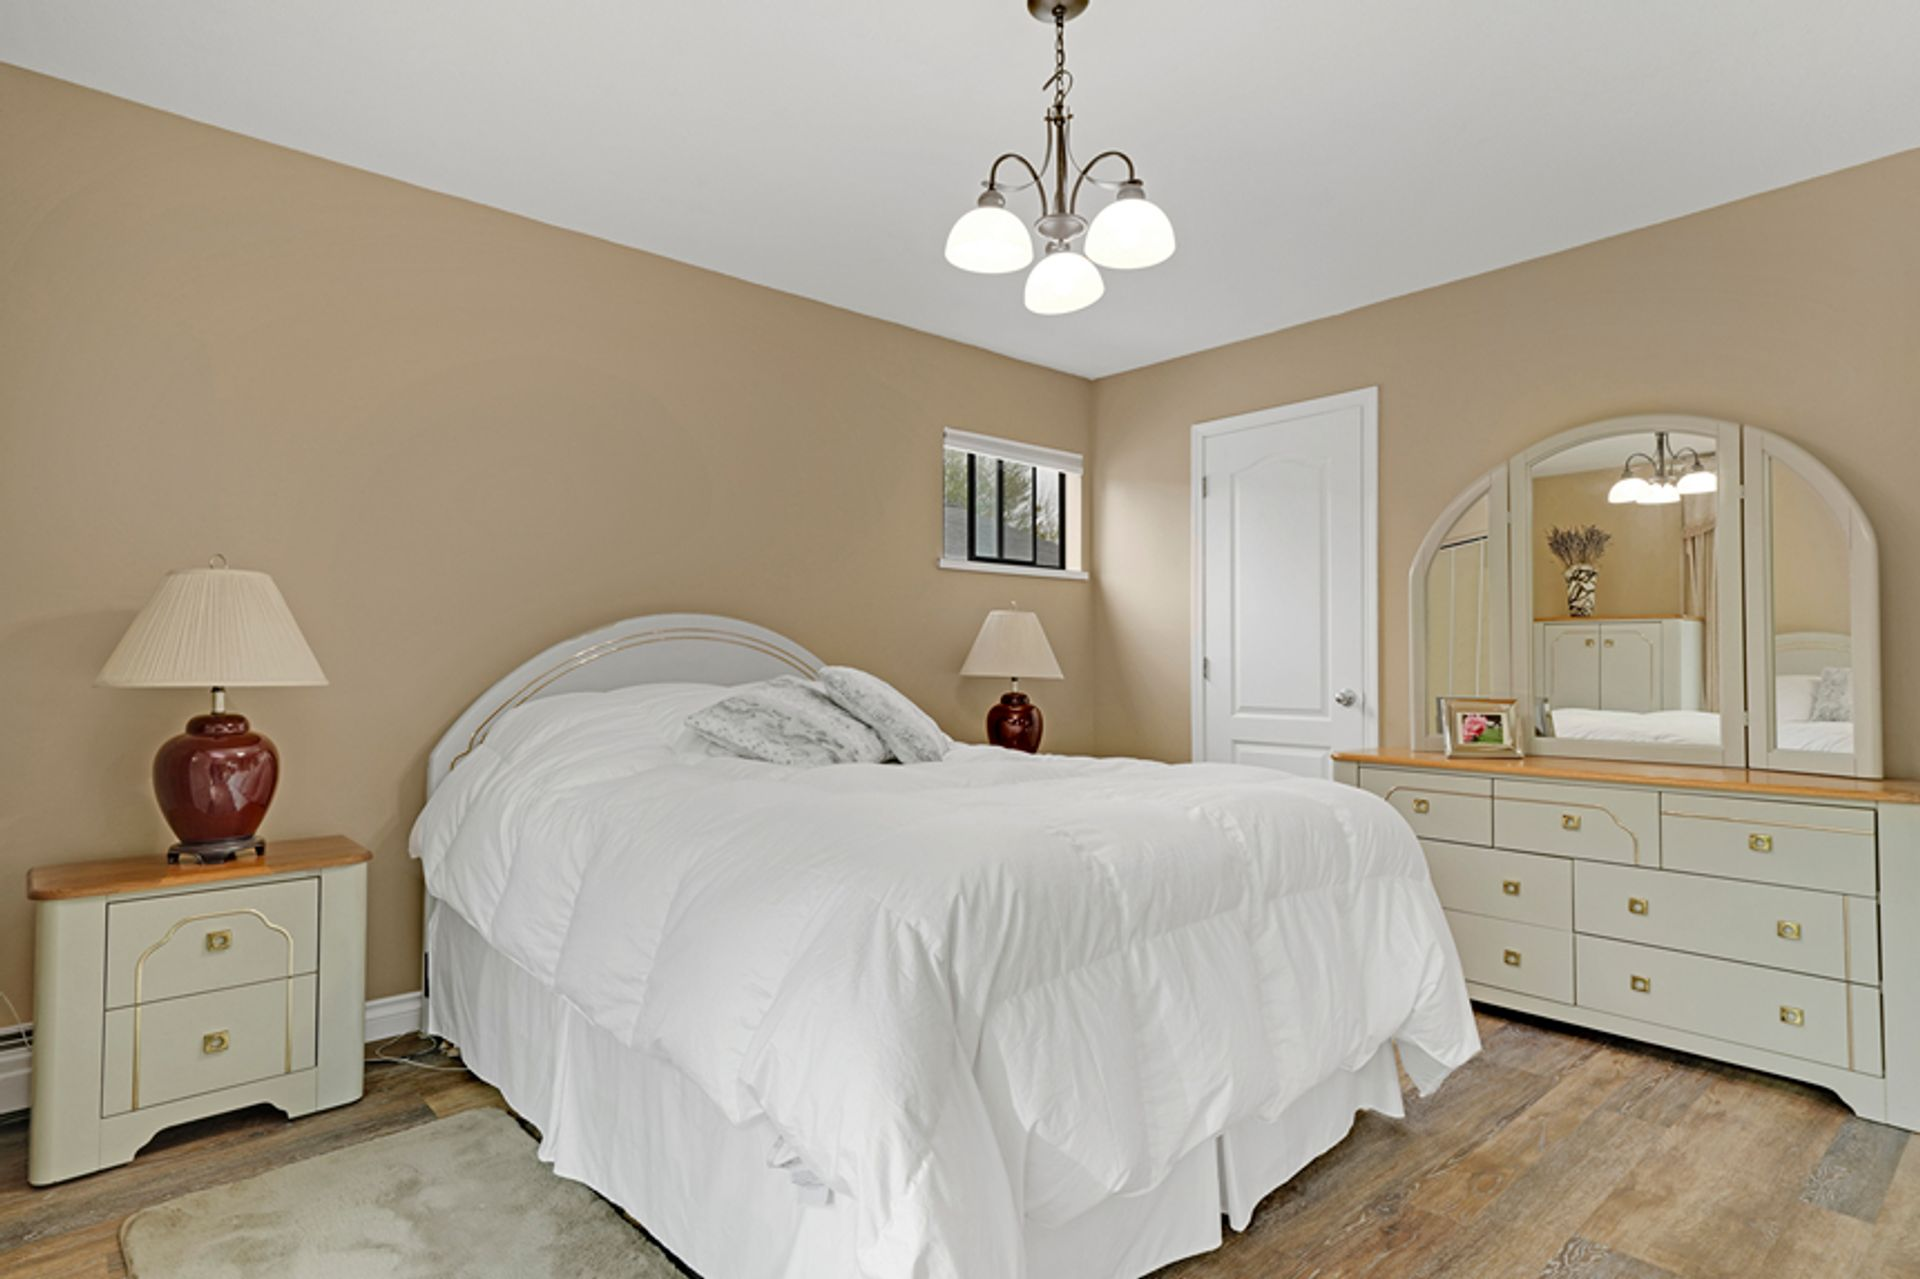 3b-above-master-bedroom-21 at 836 Irvine Street, Meadow Brook, Coquitlam